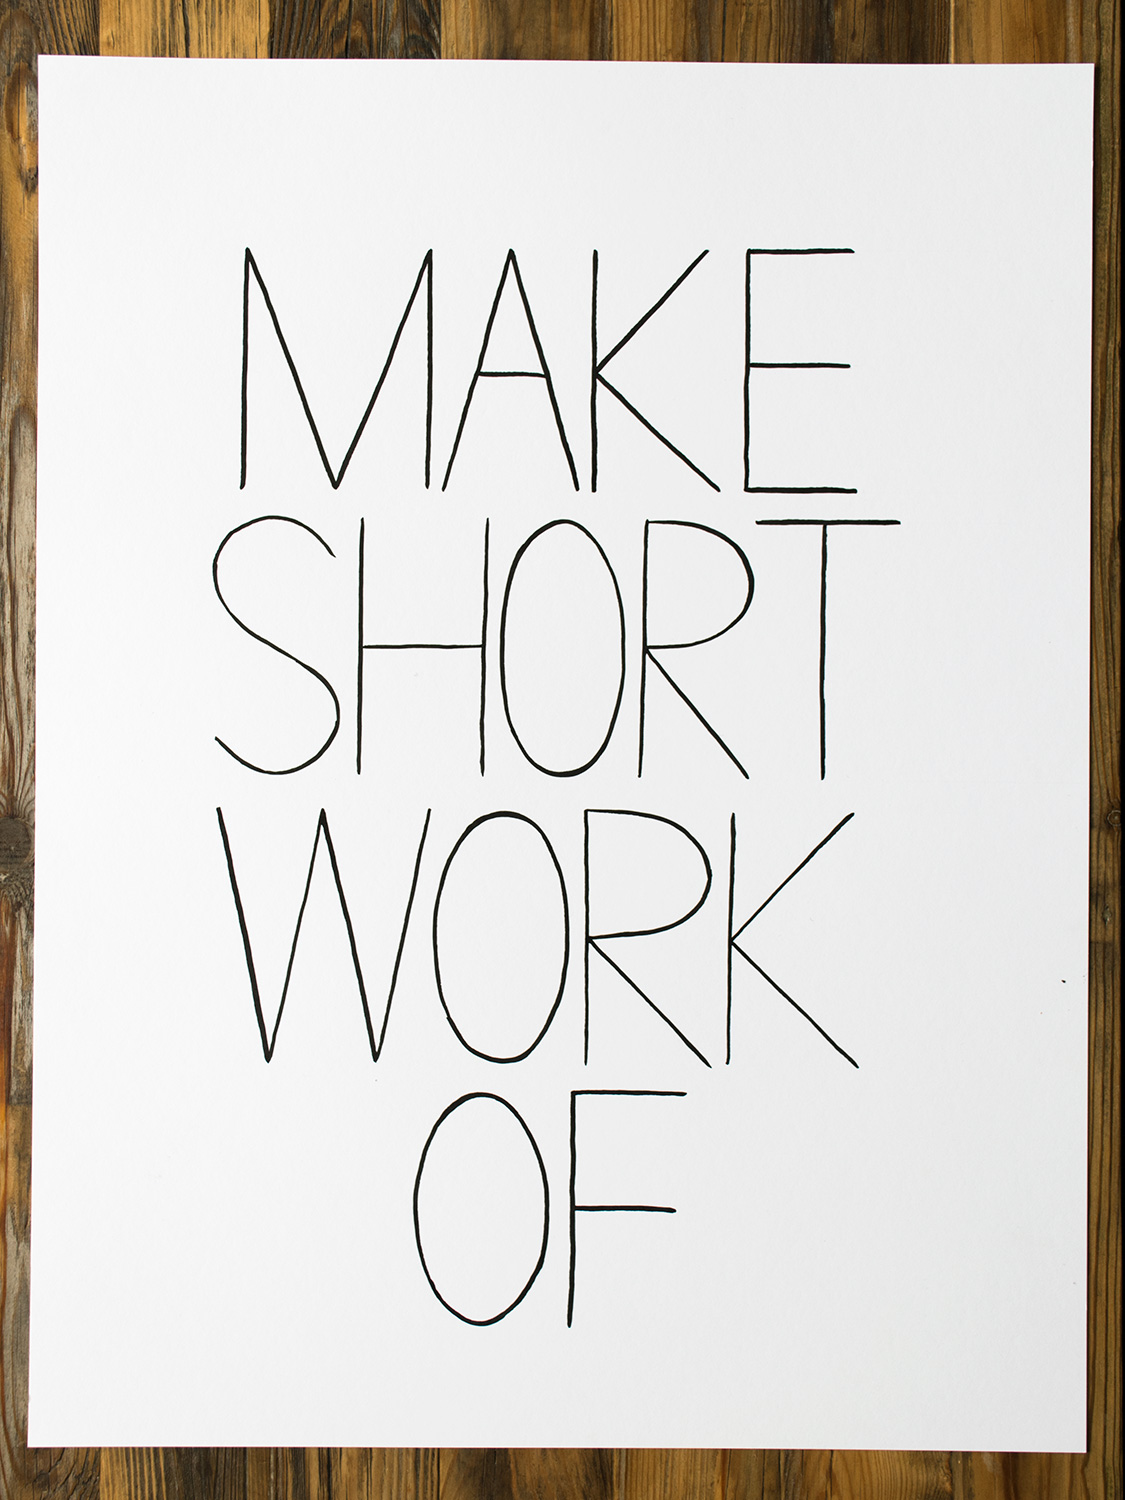 make_short_work_of-1500x1125.jpg